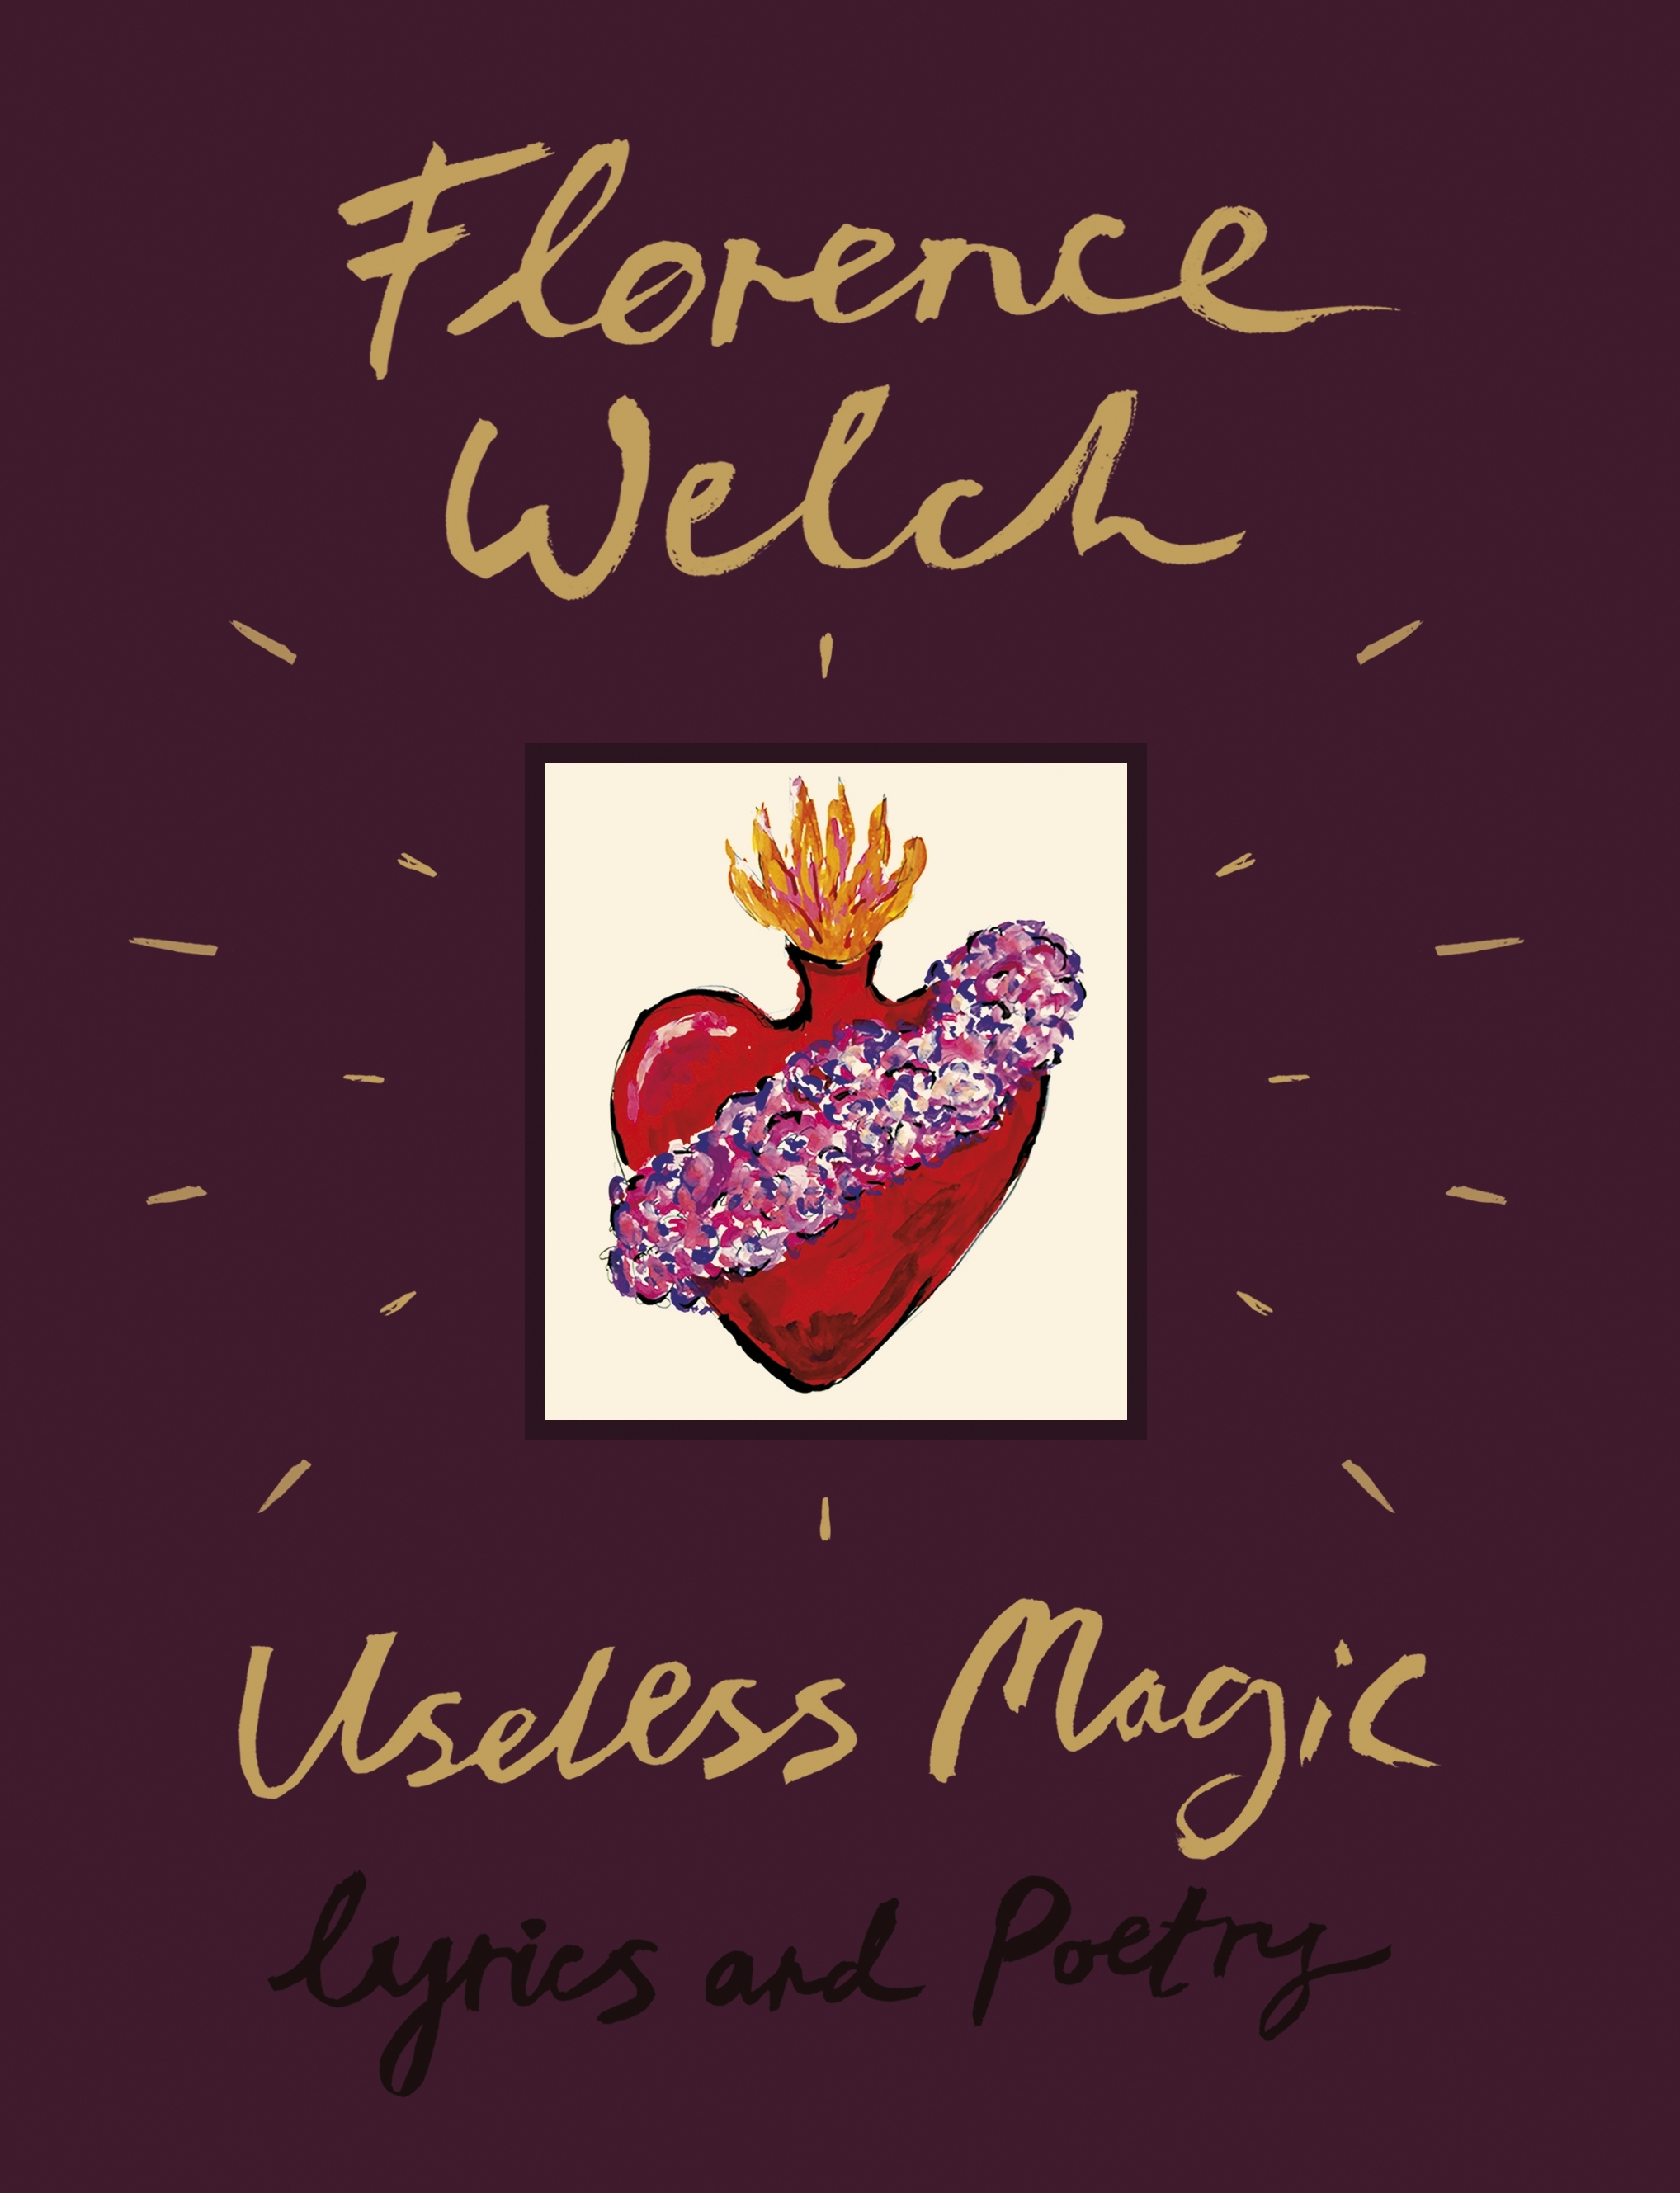 Useless Magic By Florence Welch Penguin Books Australia